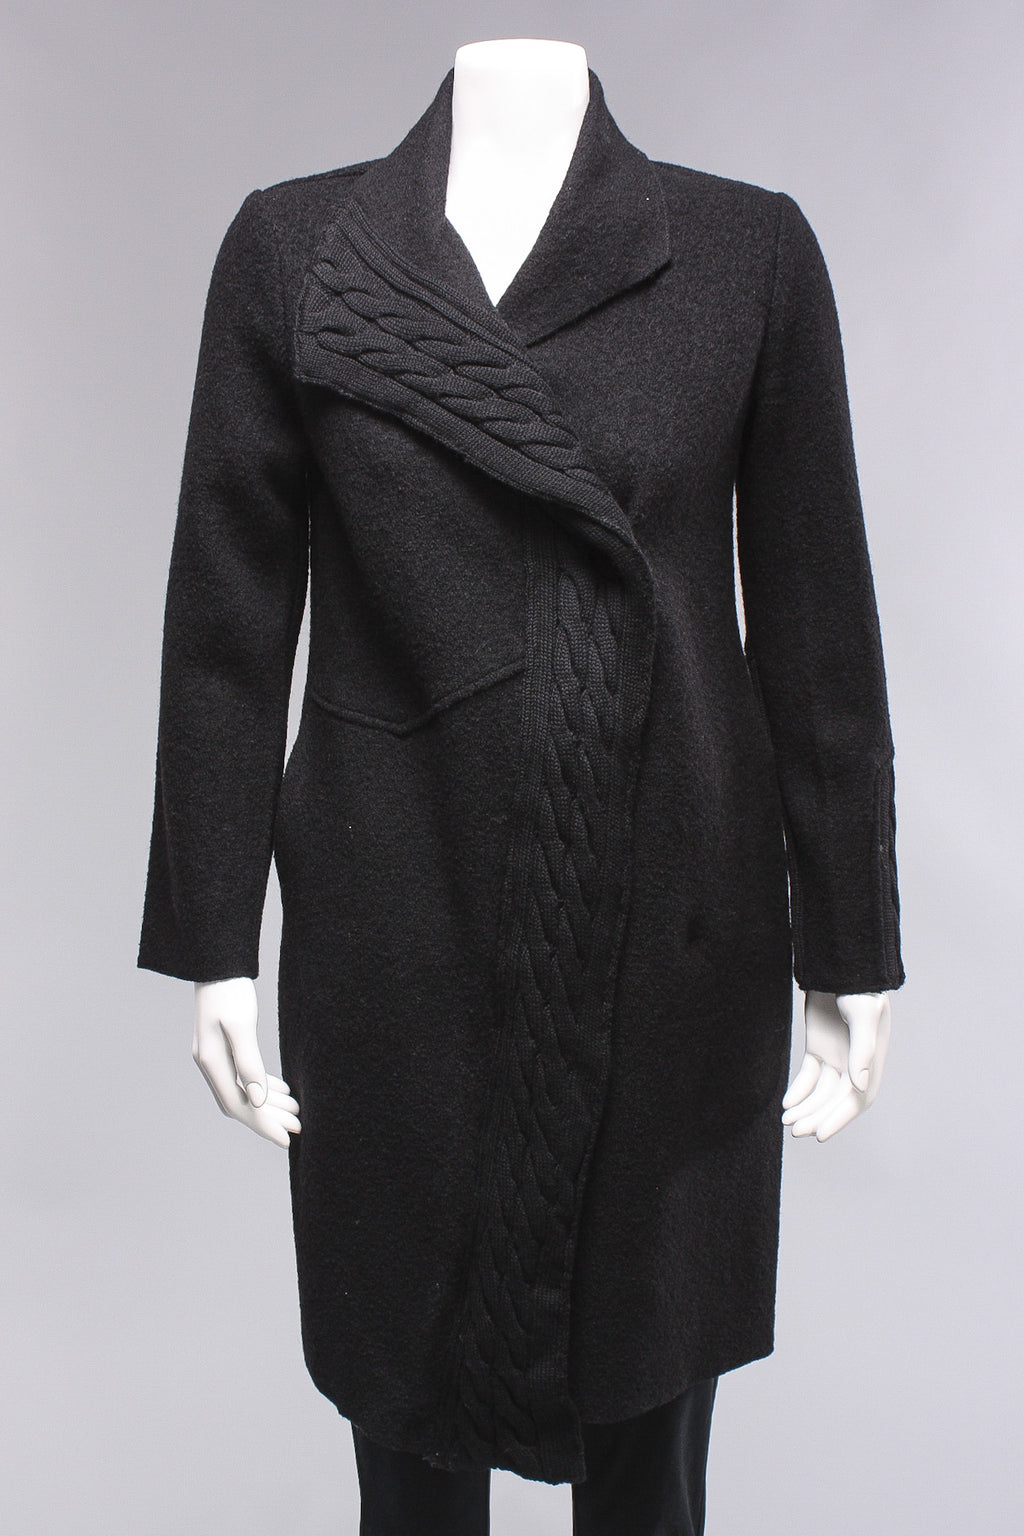 Wrap Up Coat in Black